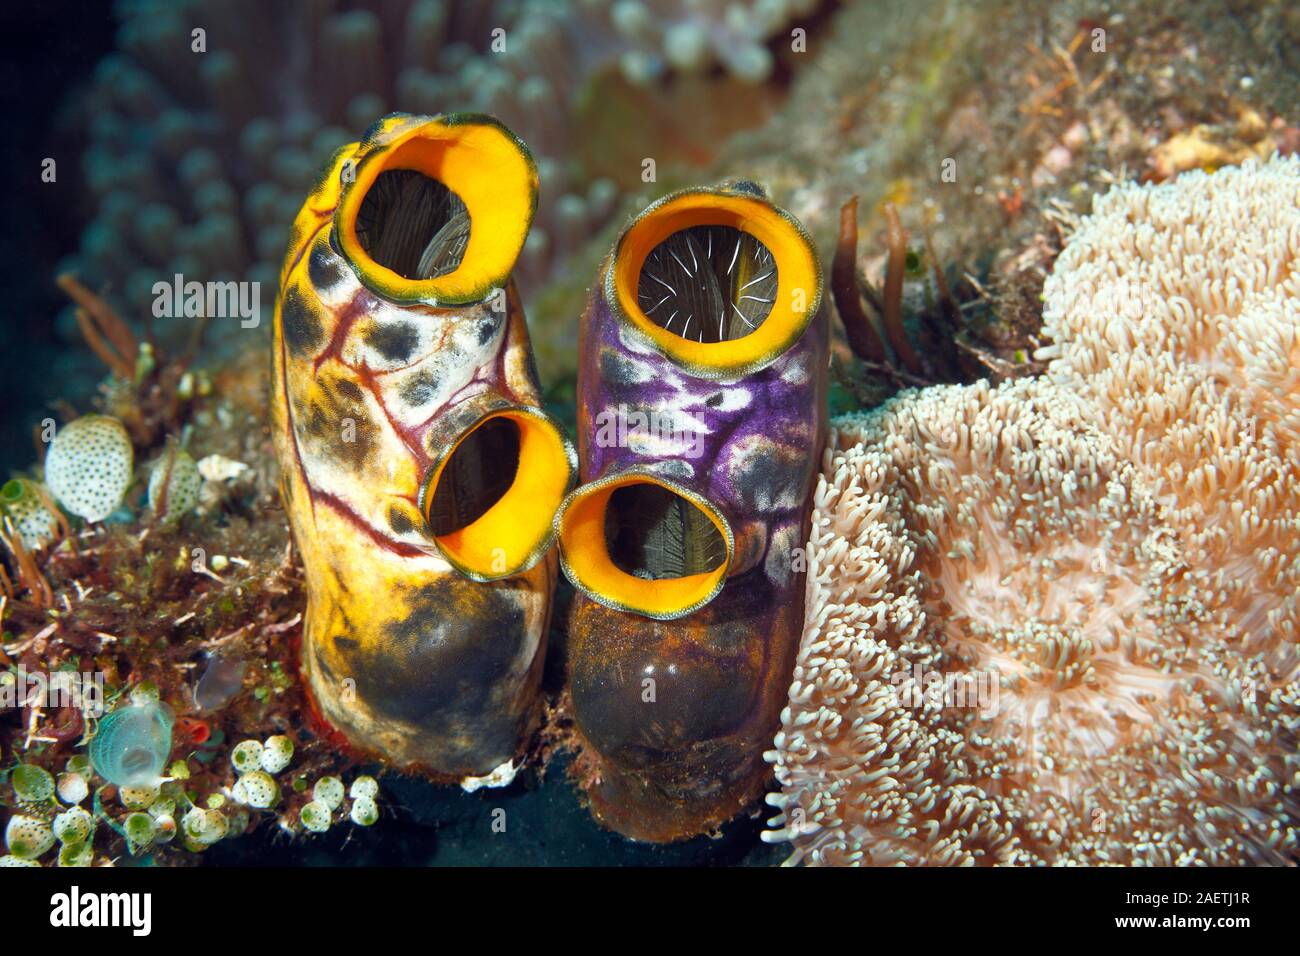 ox-heart-ascidian-also-known-as-gold-mouth-sea-squirt-or-ink-spot-sea-squirt-polycarpa-aurata-tulamben-bali-indonesia-bali-sea-indian-ocean-2AETJ1R.jpg